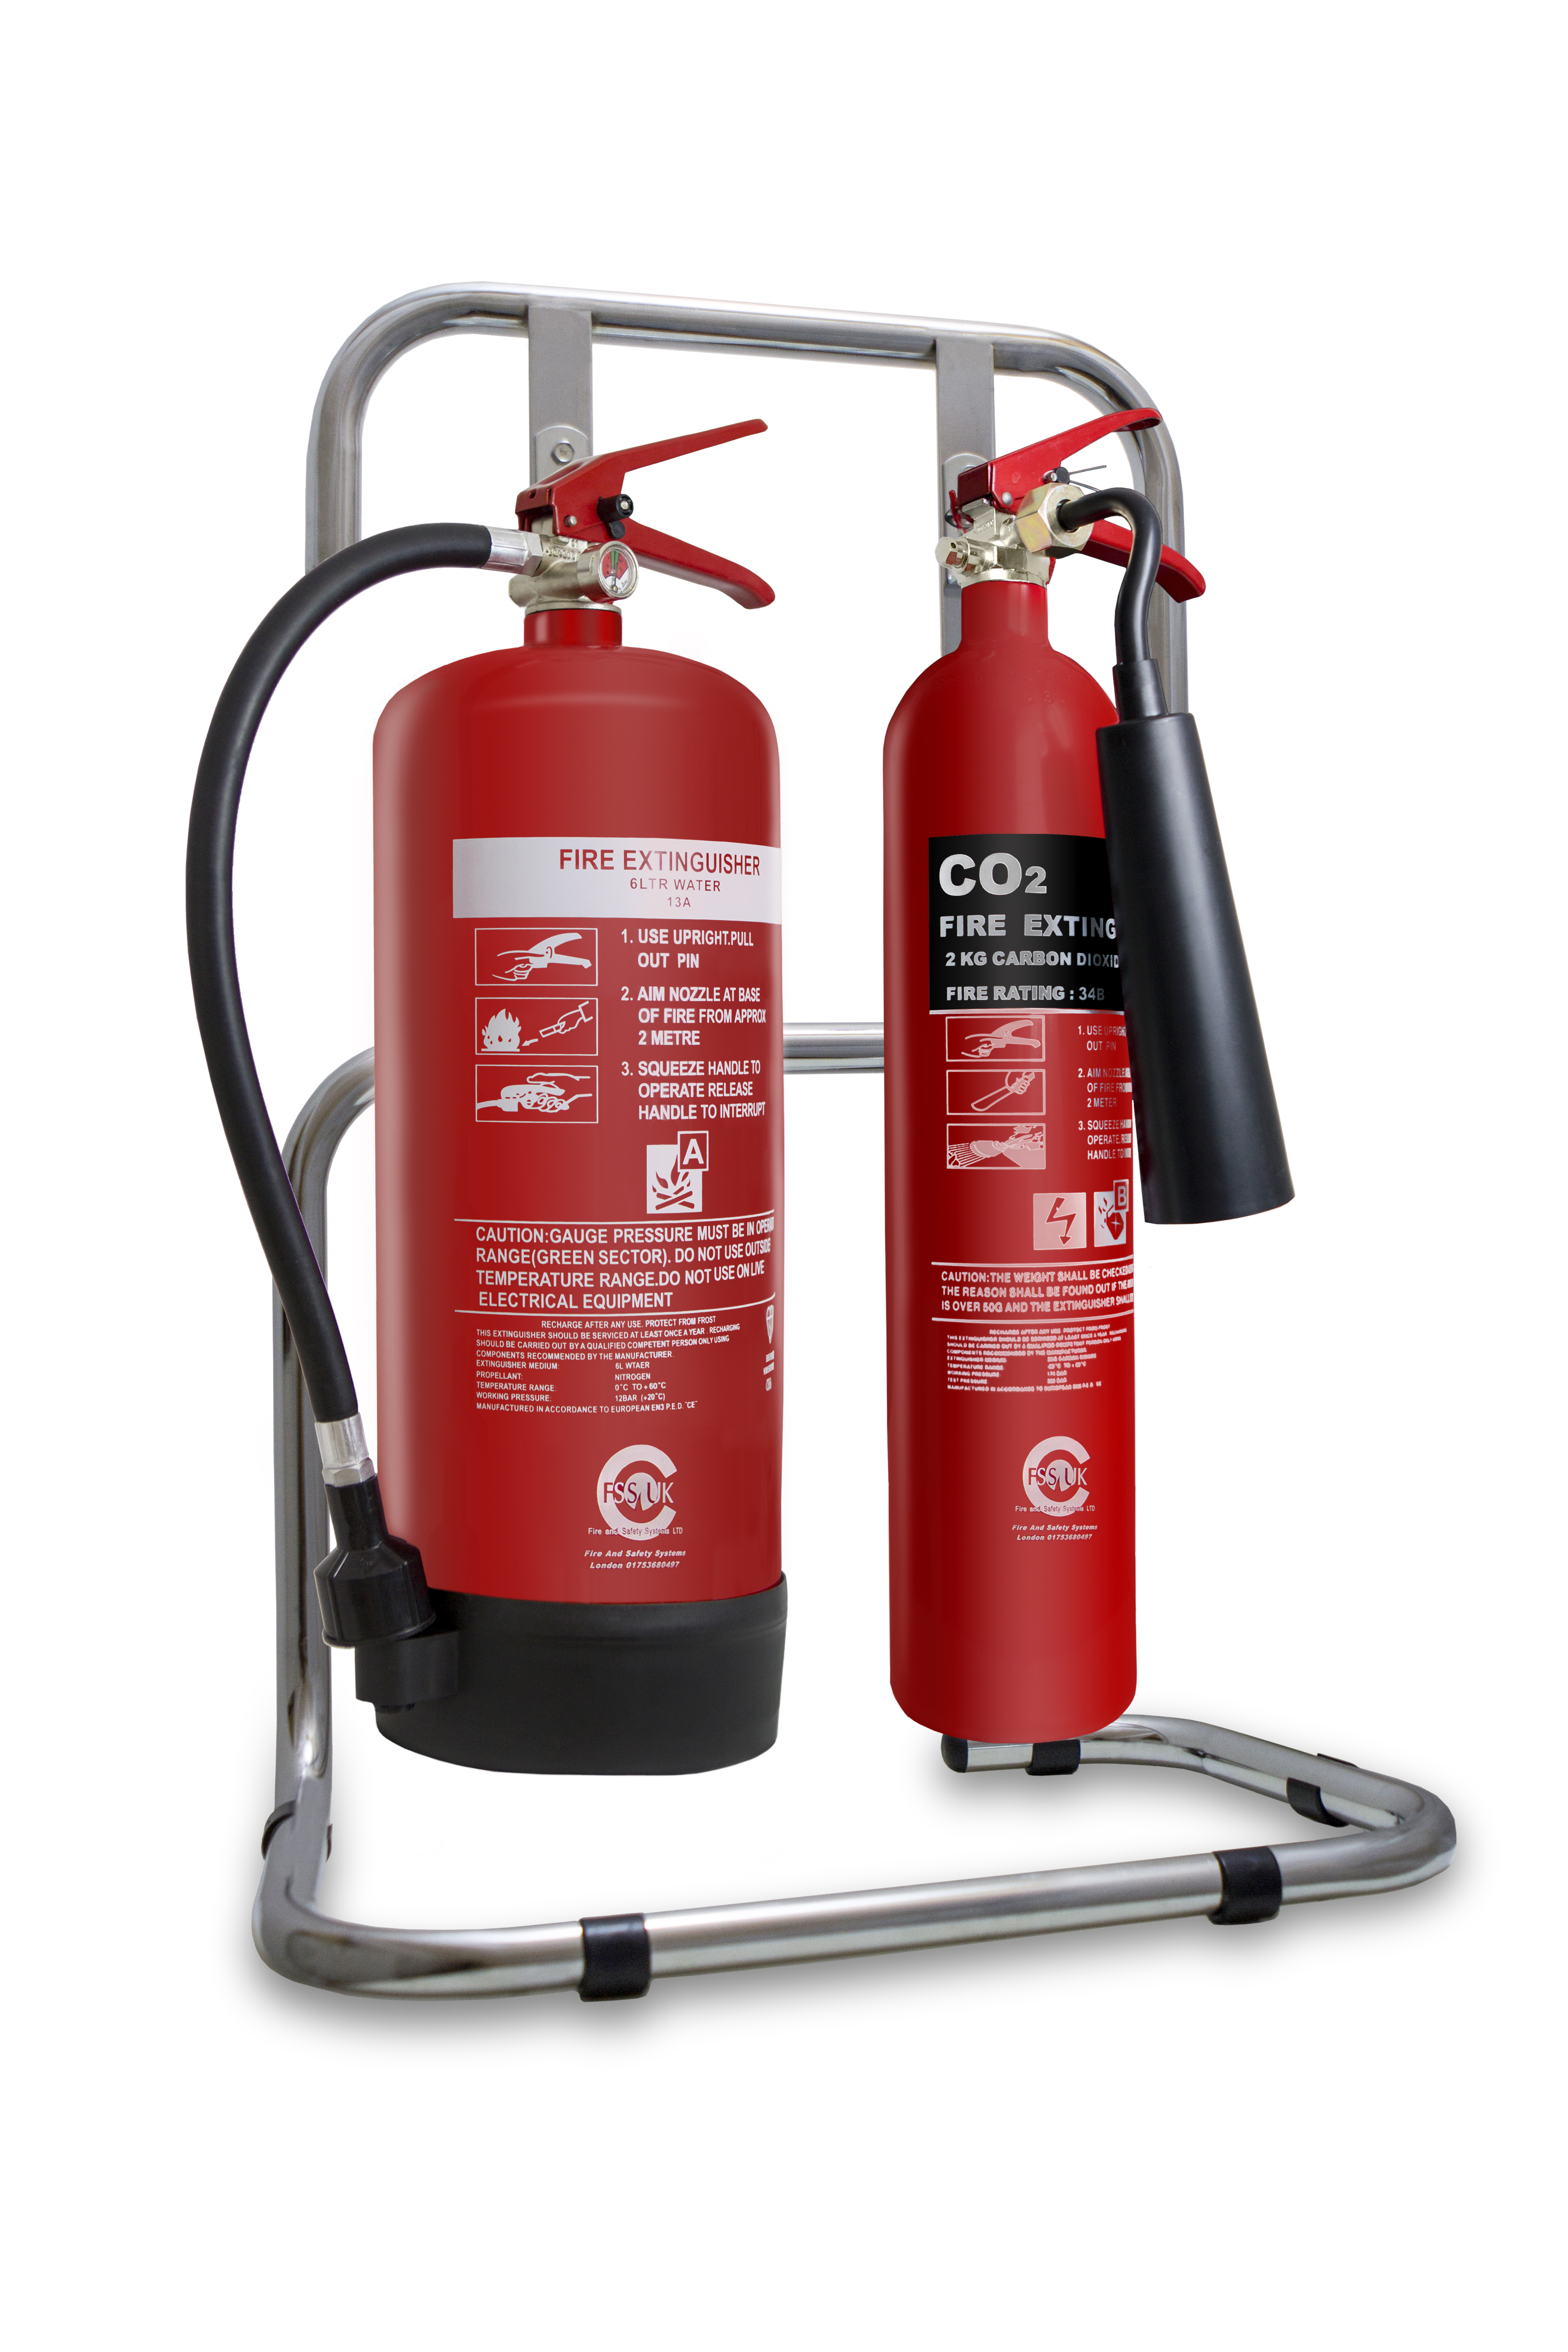 2kg CO2 Fire Extinguisher - 6L Water Fire Extinguisher - stand